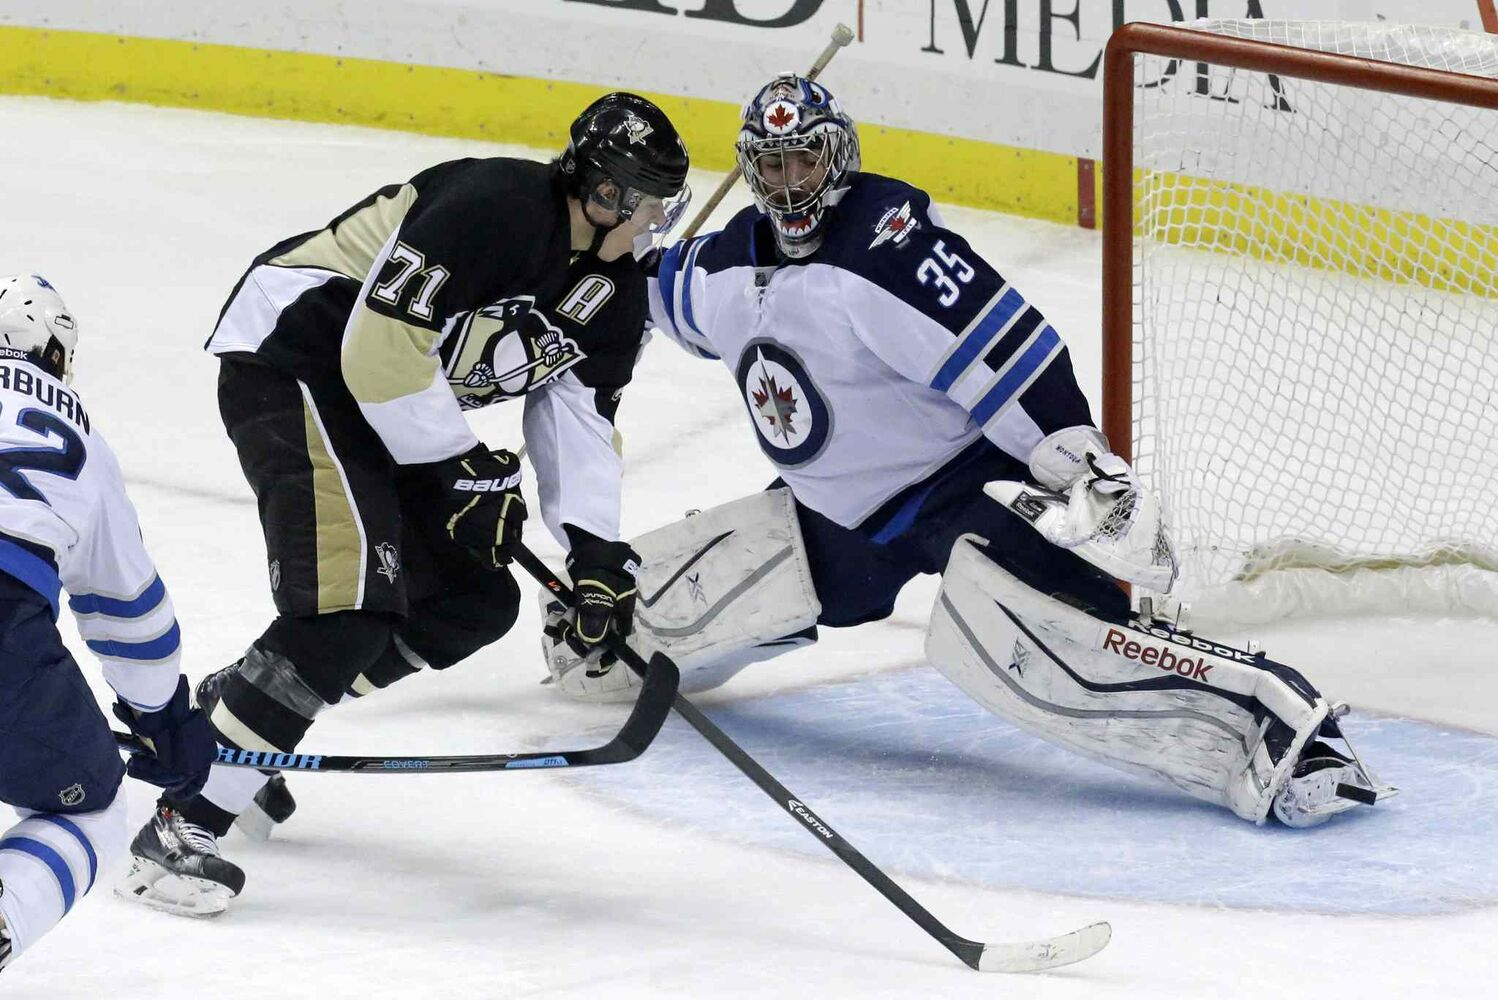 Pittsburgh Penguins' Evgeni Malkin can't get to a rebound in front of Winnipeg Jets goalie Al Montoya during the first period of an NHL game at the Consol Energy Center in Pittsburgh Sunday. The Penguins won 6-5. (GENE J. PUSKAR / THE ASSOCIATED PRESS)